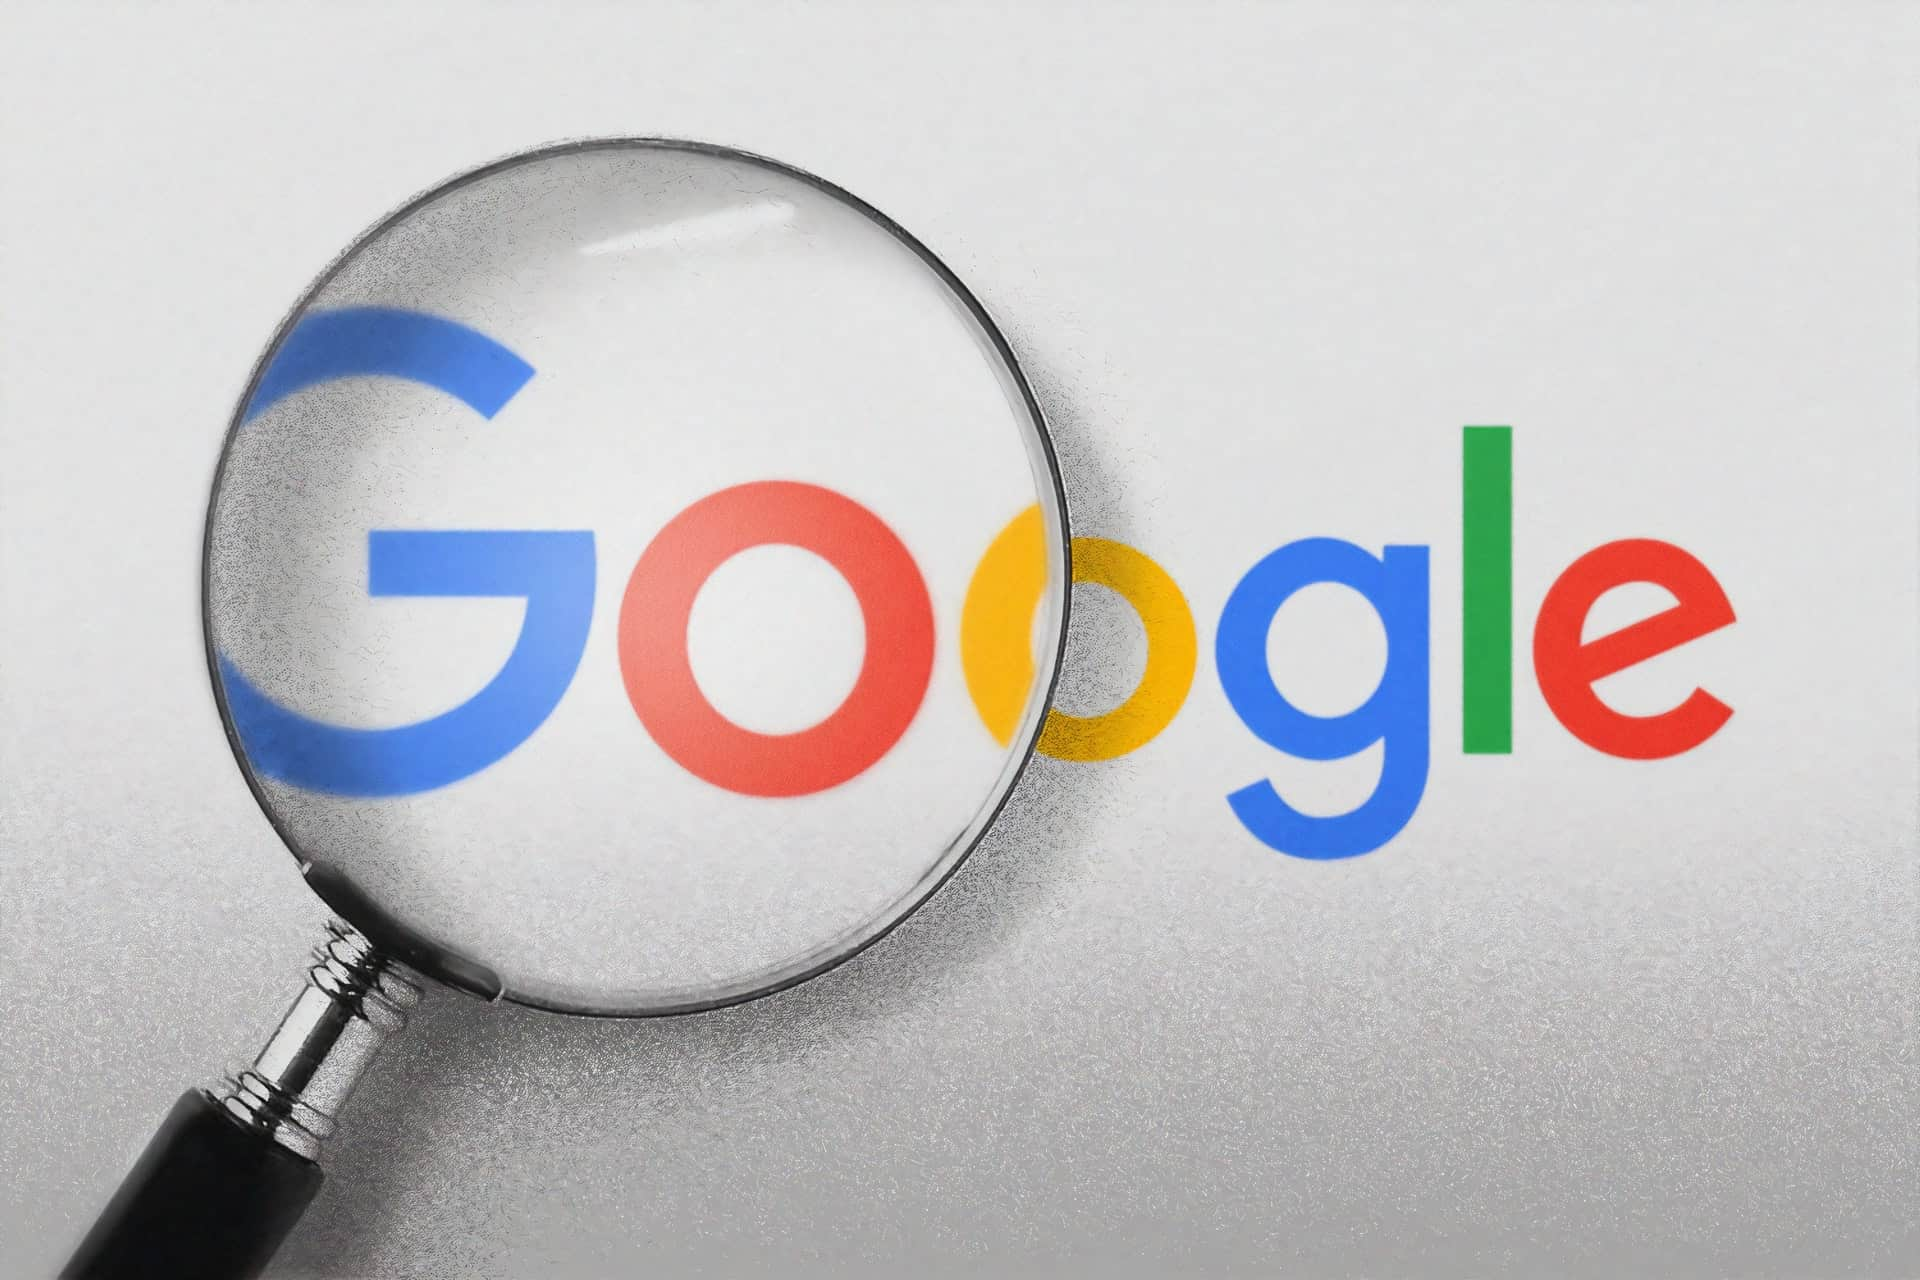 Google logo and magnifying glass